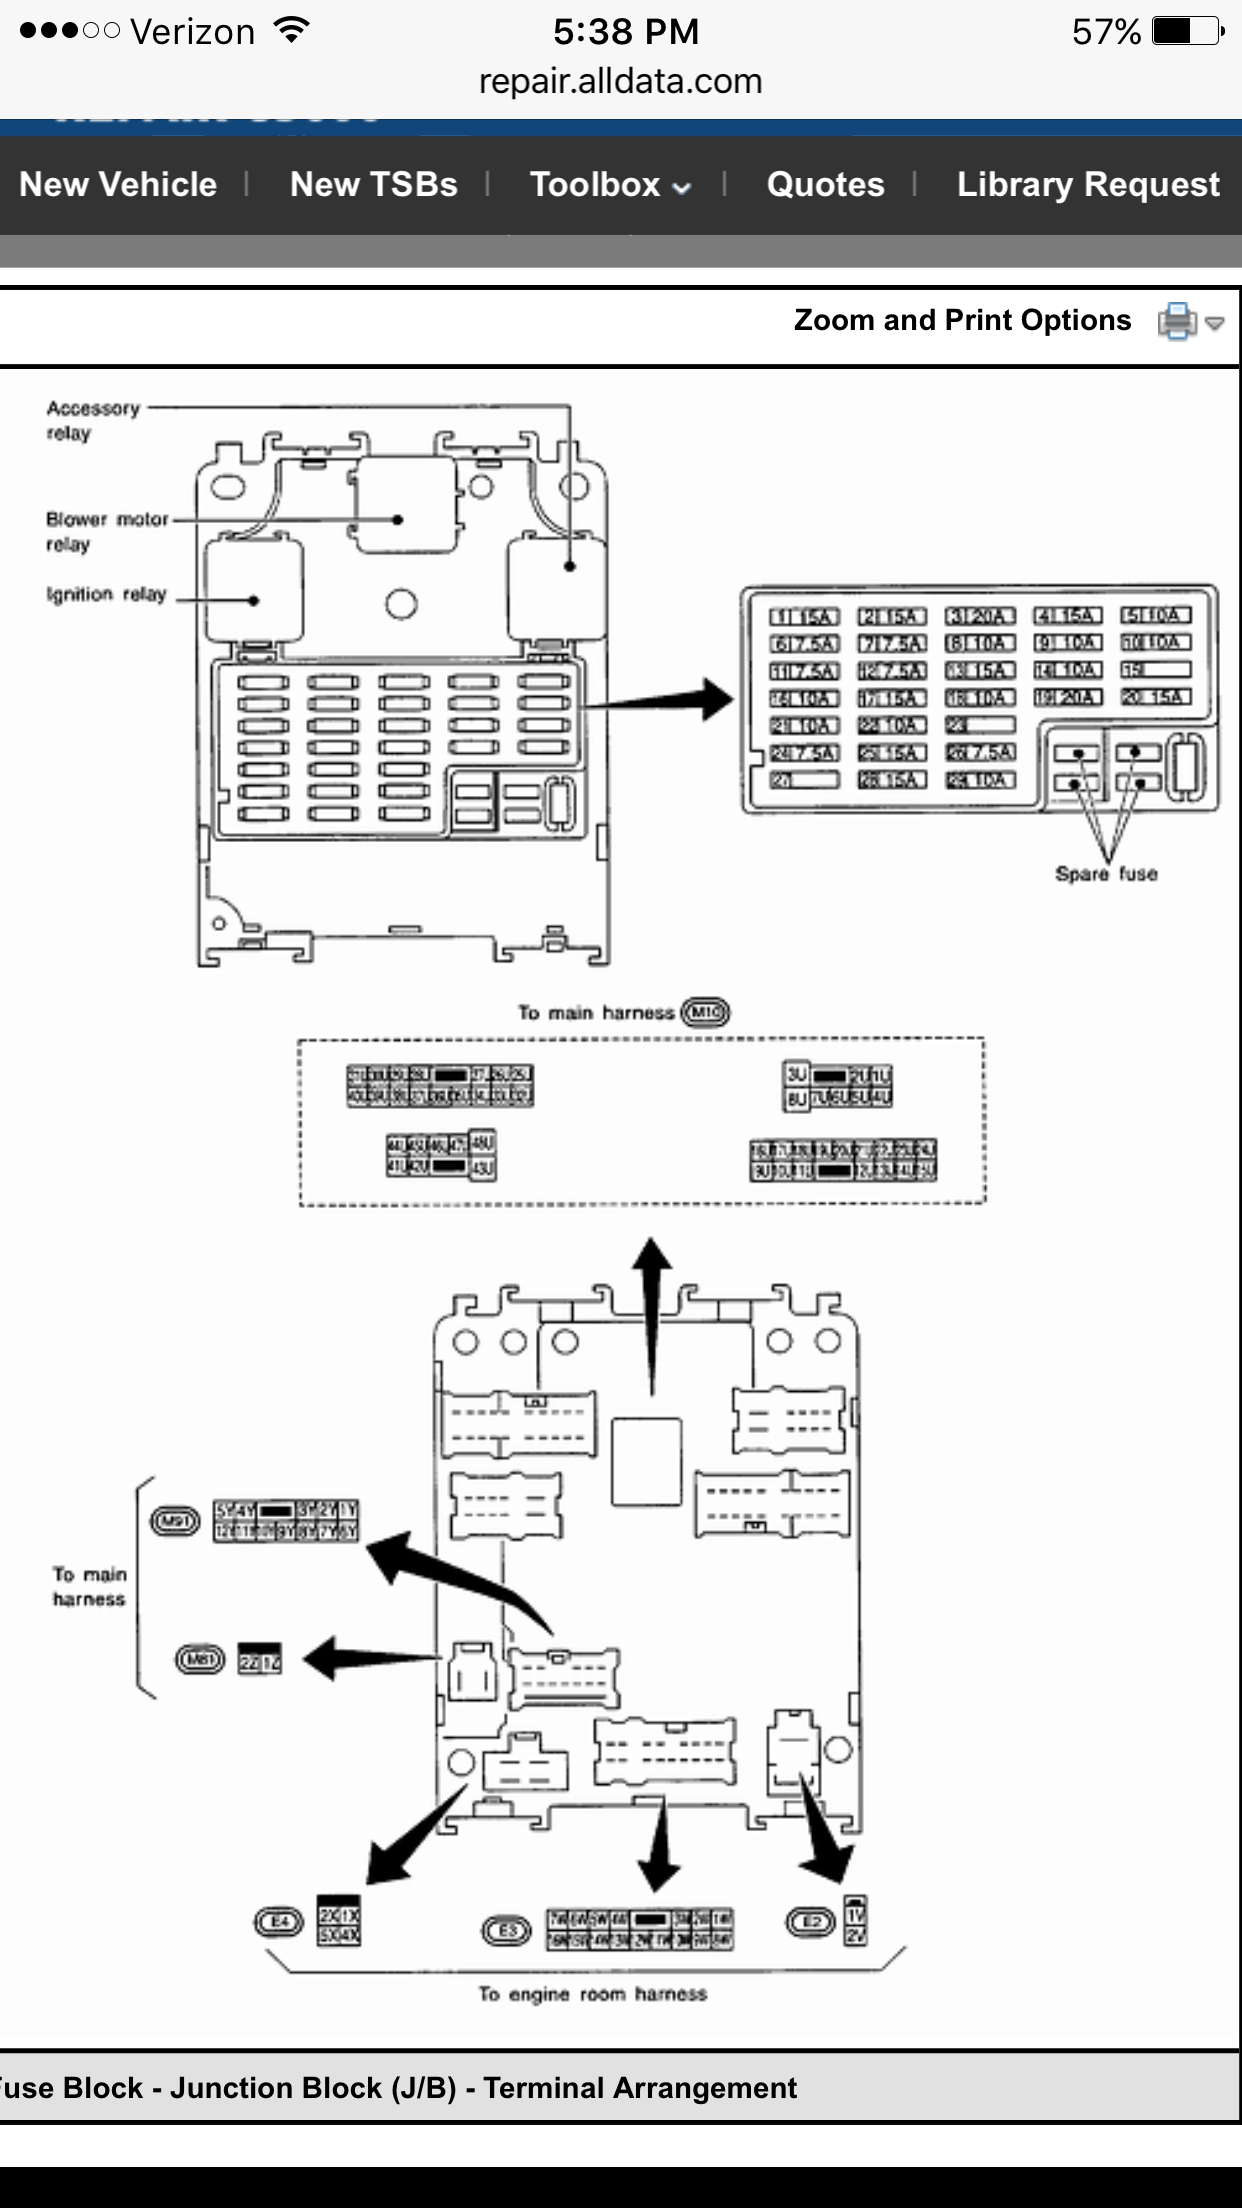 DIAGRAM] Infiniti Qx4 Fuse Box Diagram FULL Version HD Quality Box Diagram  - P420FUSE7181.SFDAPAOLA.ITp420fuse7181.sfdapaola.it